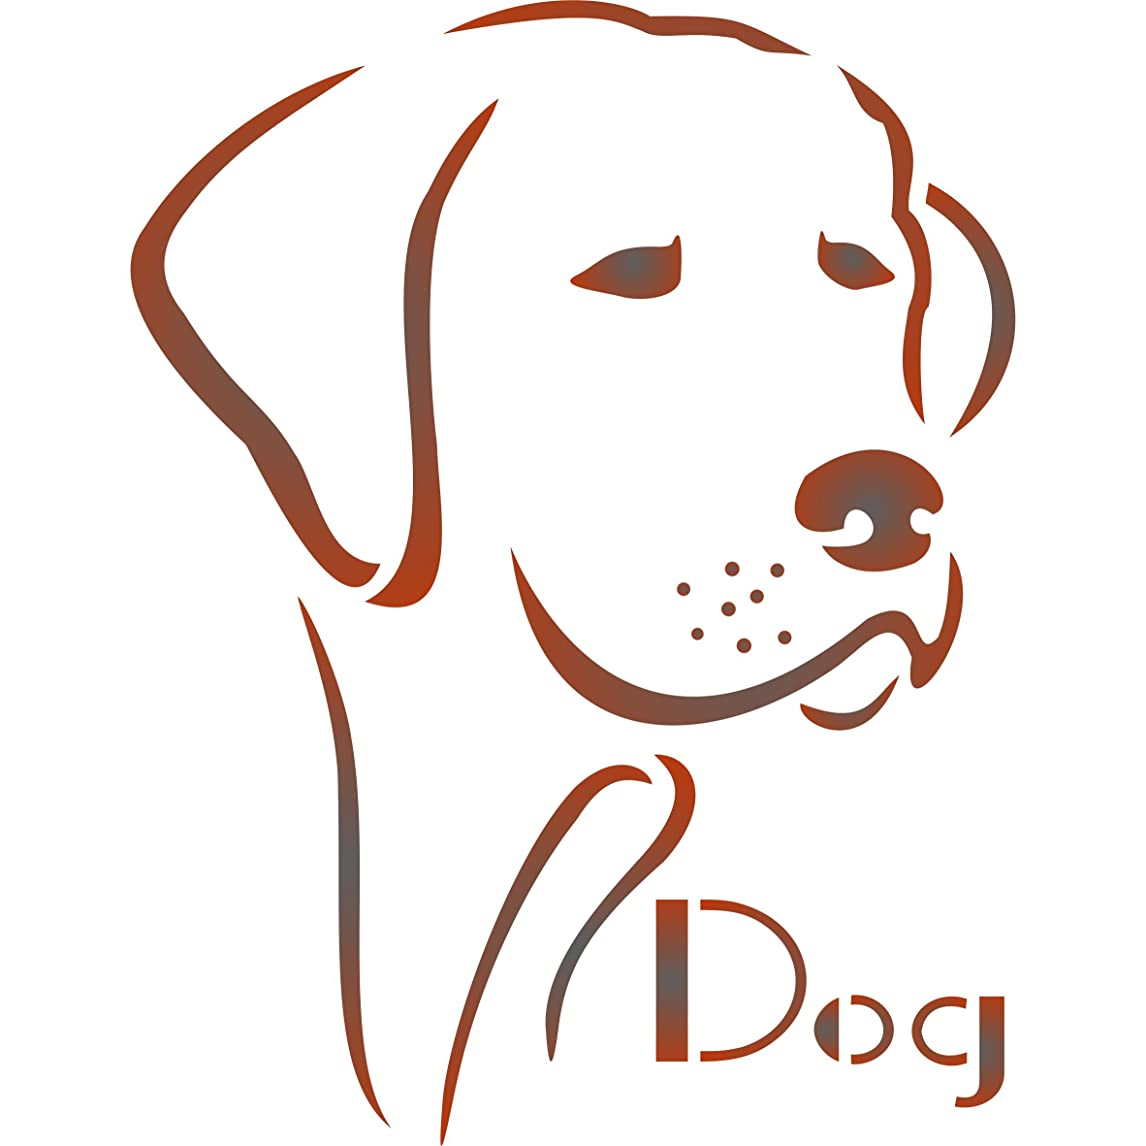 """Dog Stencil - (size 6.5""""w x 8.5""""h) Reusable Dog Stencils for Painting - Best Quality Dog Stencils for Walls - Use on Walls, Floors, Fabrics, Glass, Wood, Terracotta, and More… yssuu77337511845"""